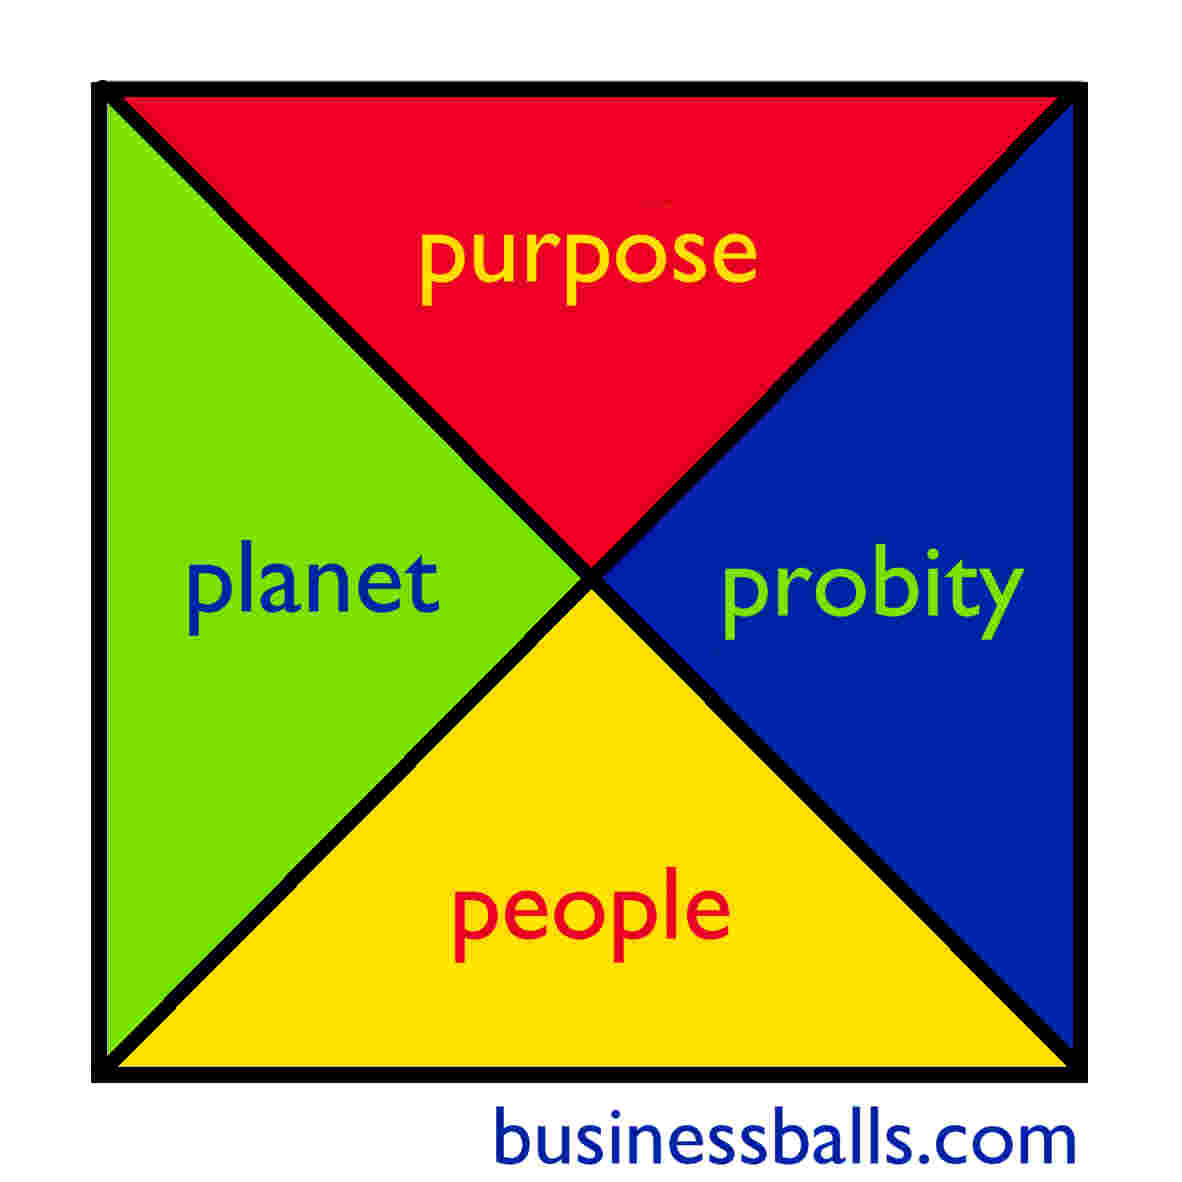 Corporate Responsibility And Ethics Businessballs Com